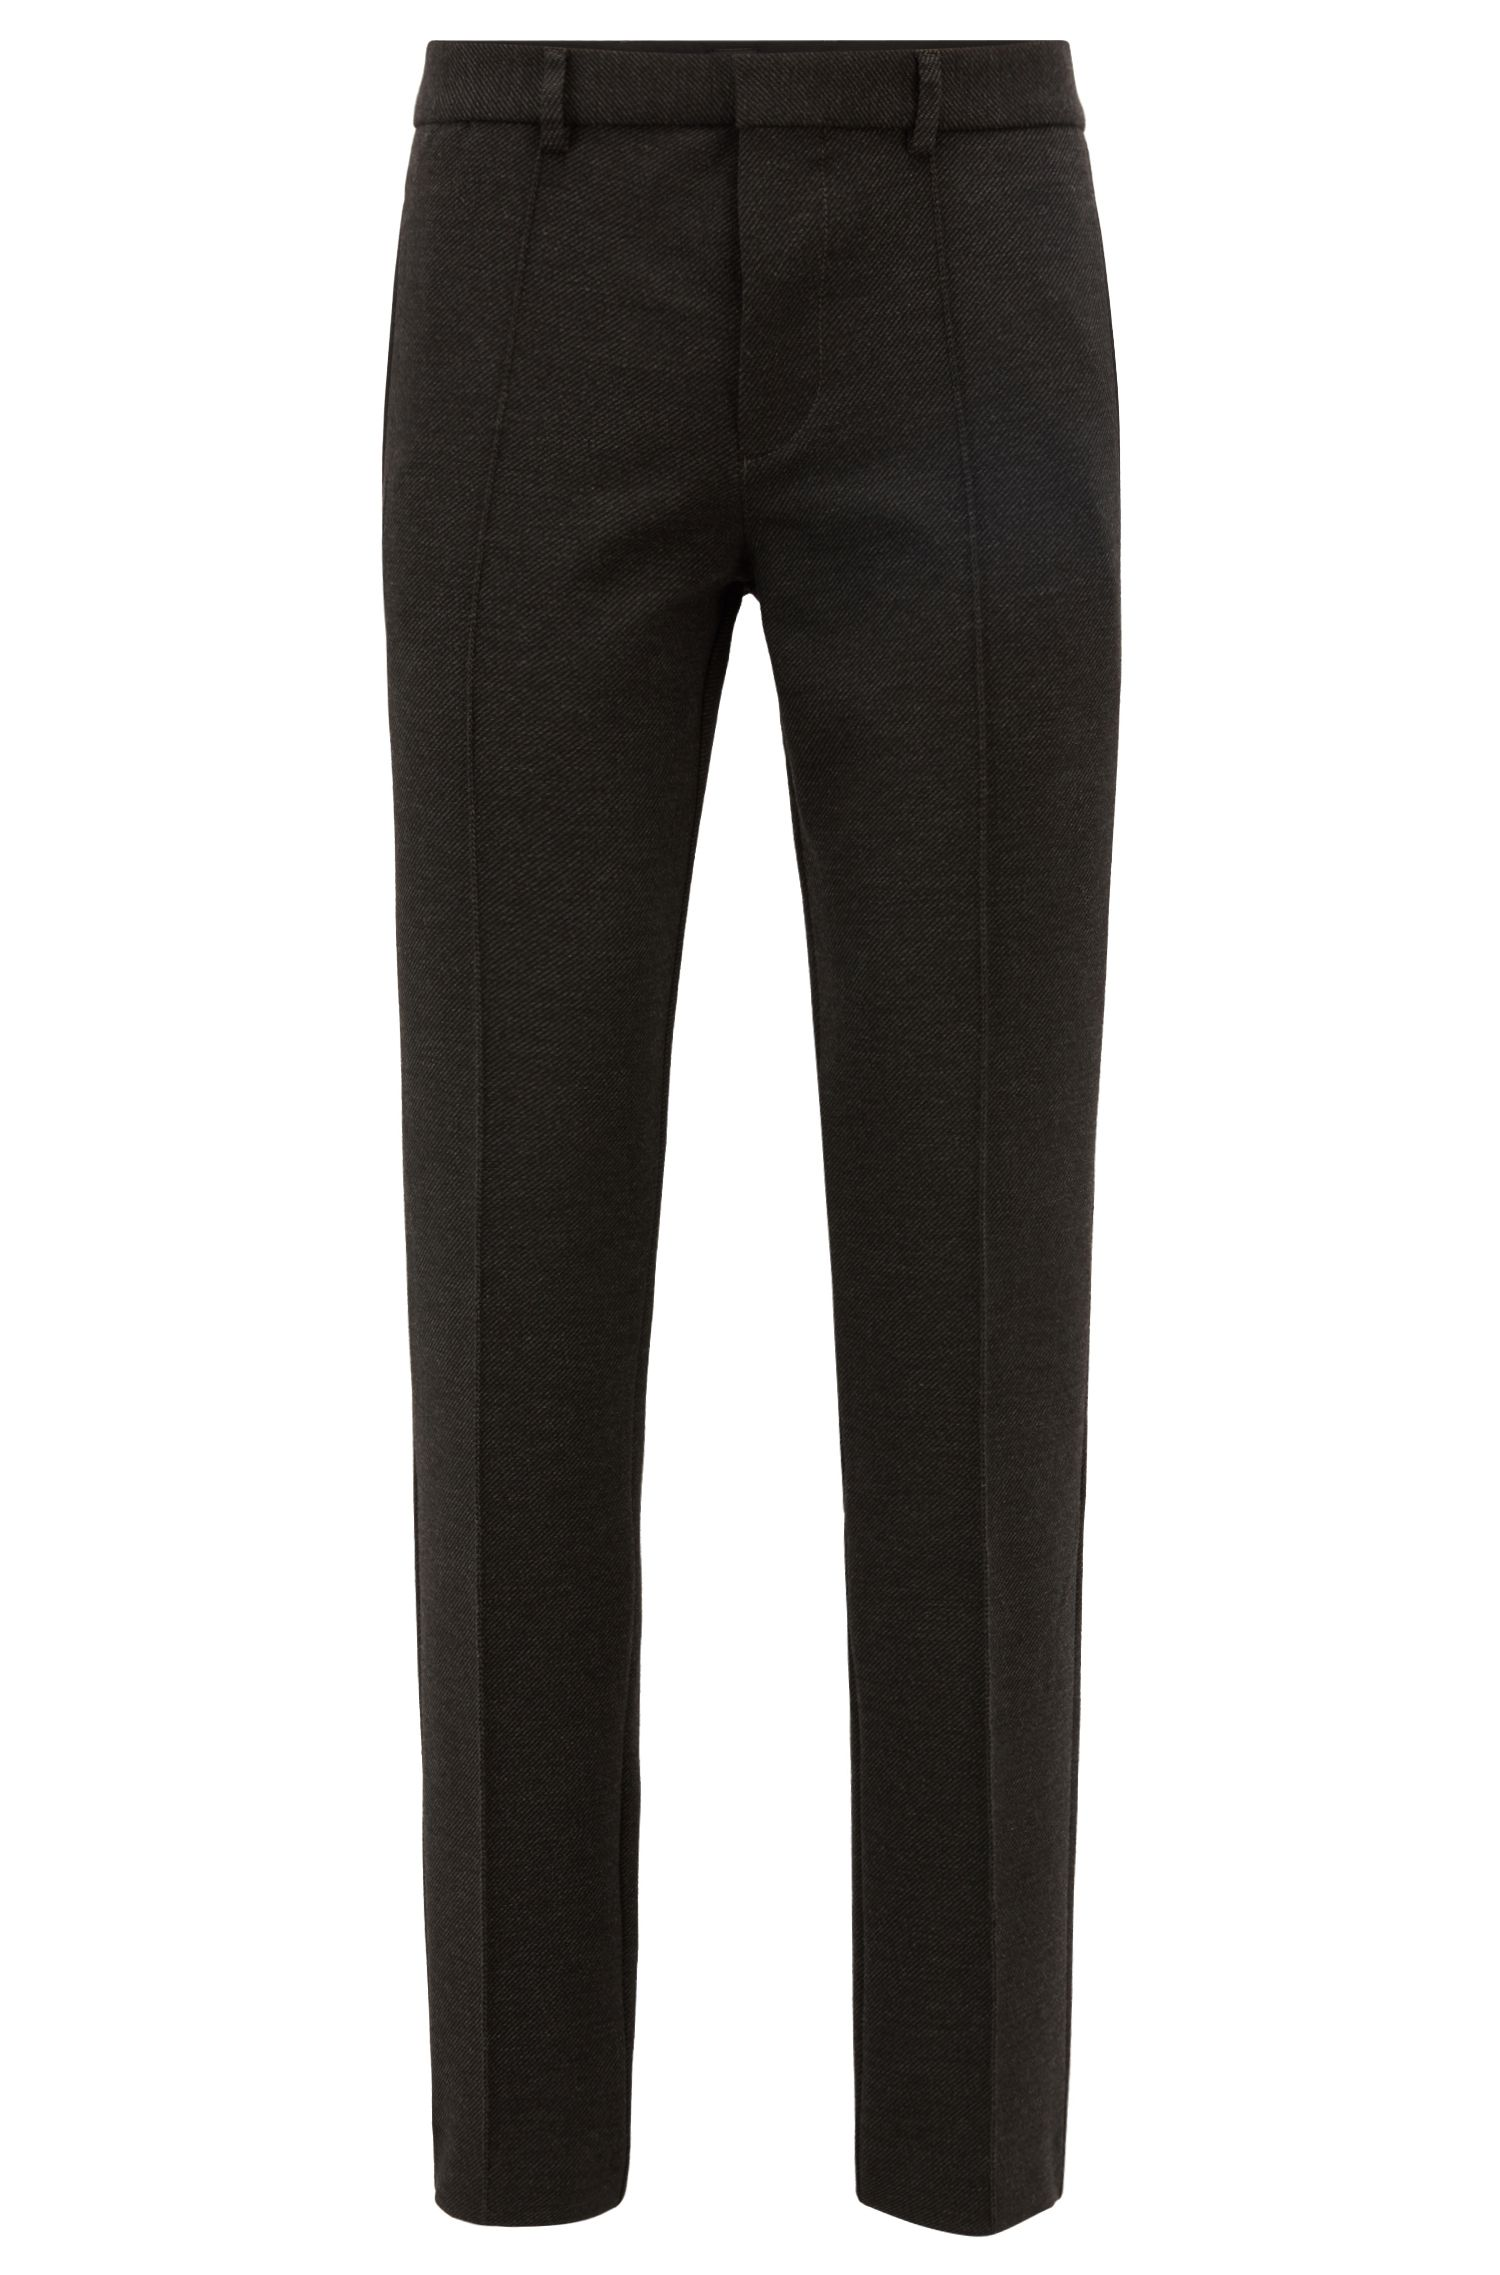 Tapered-fit trousers in interlock stretch jersey, Anthracite